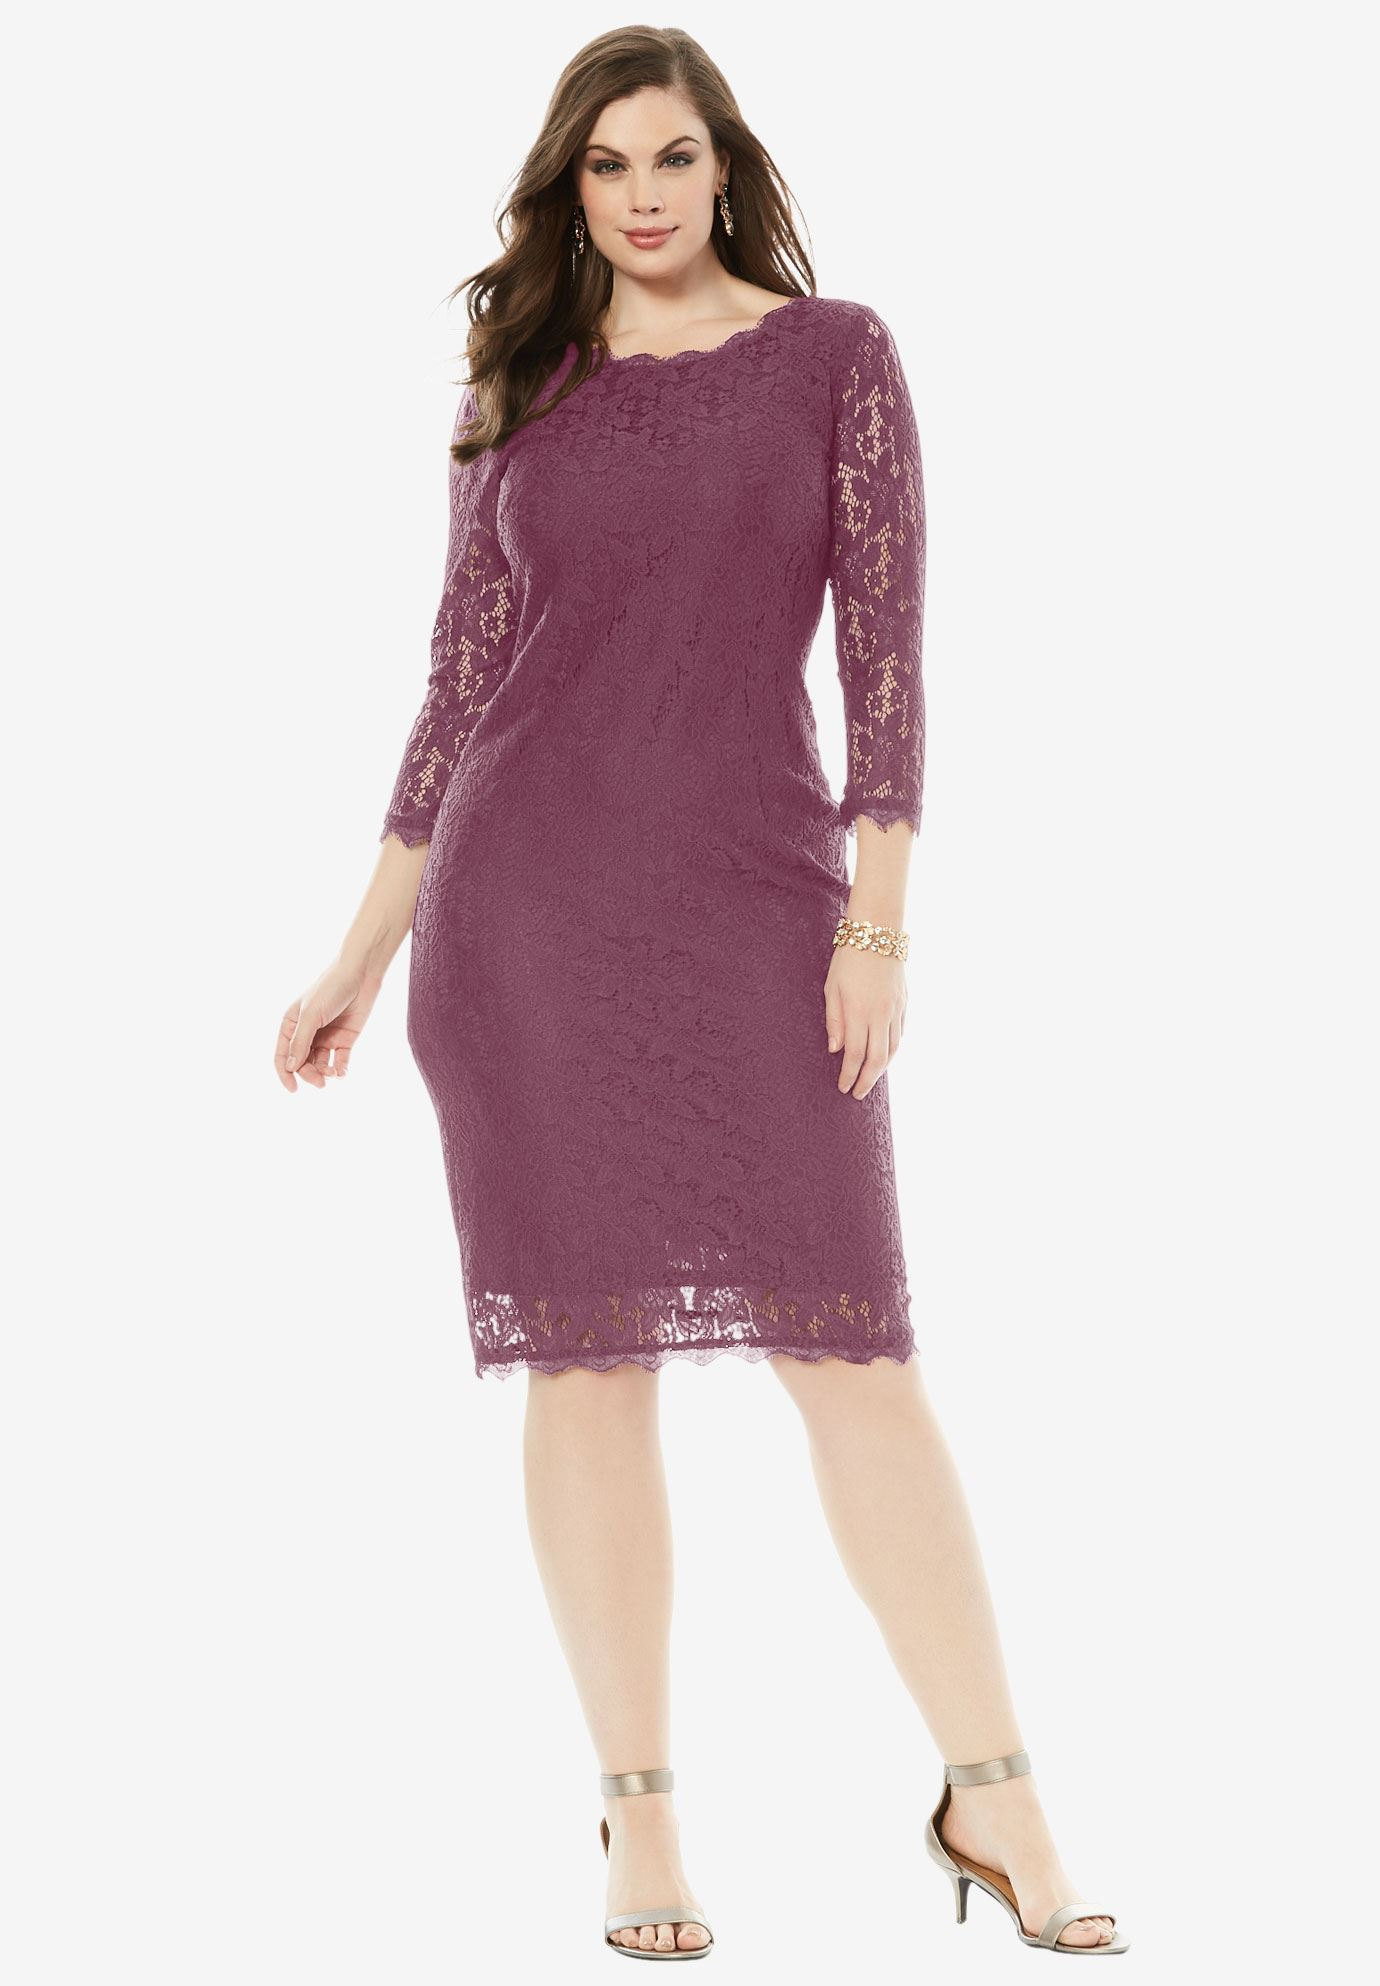 Lace Sheath Dress | Plus Size Evening Dresses | Roaman\'s